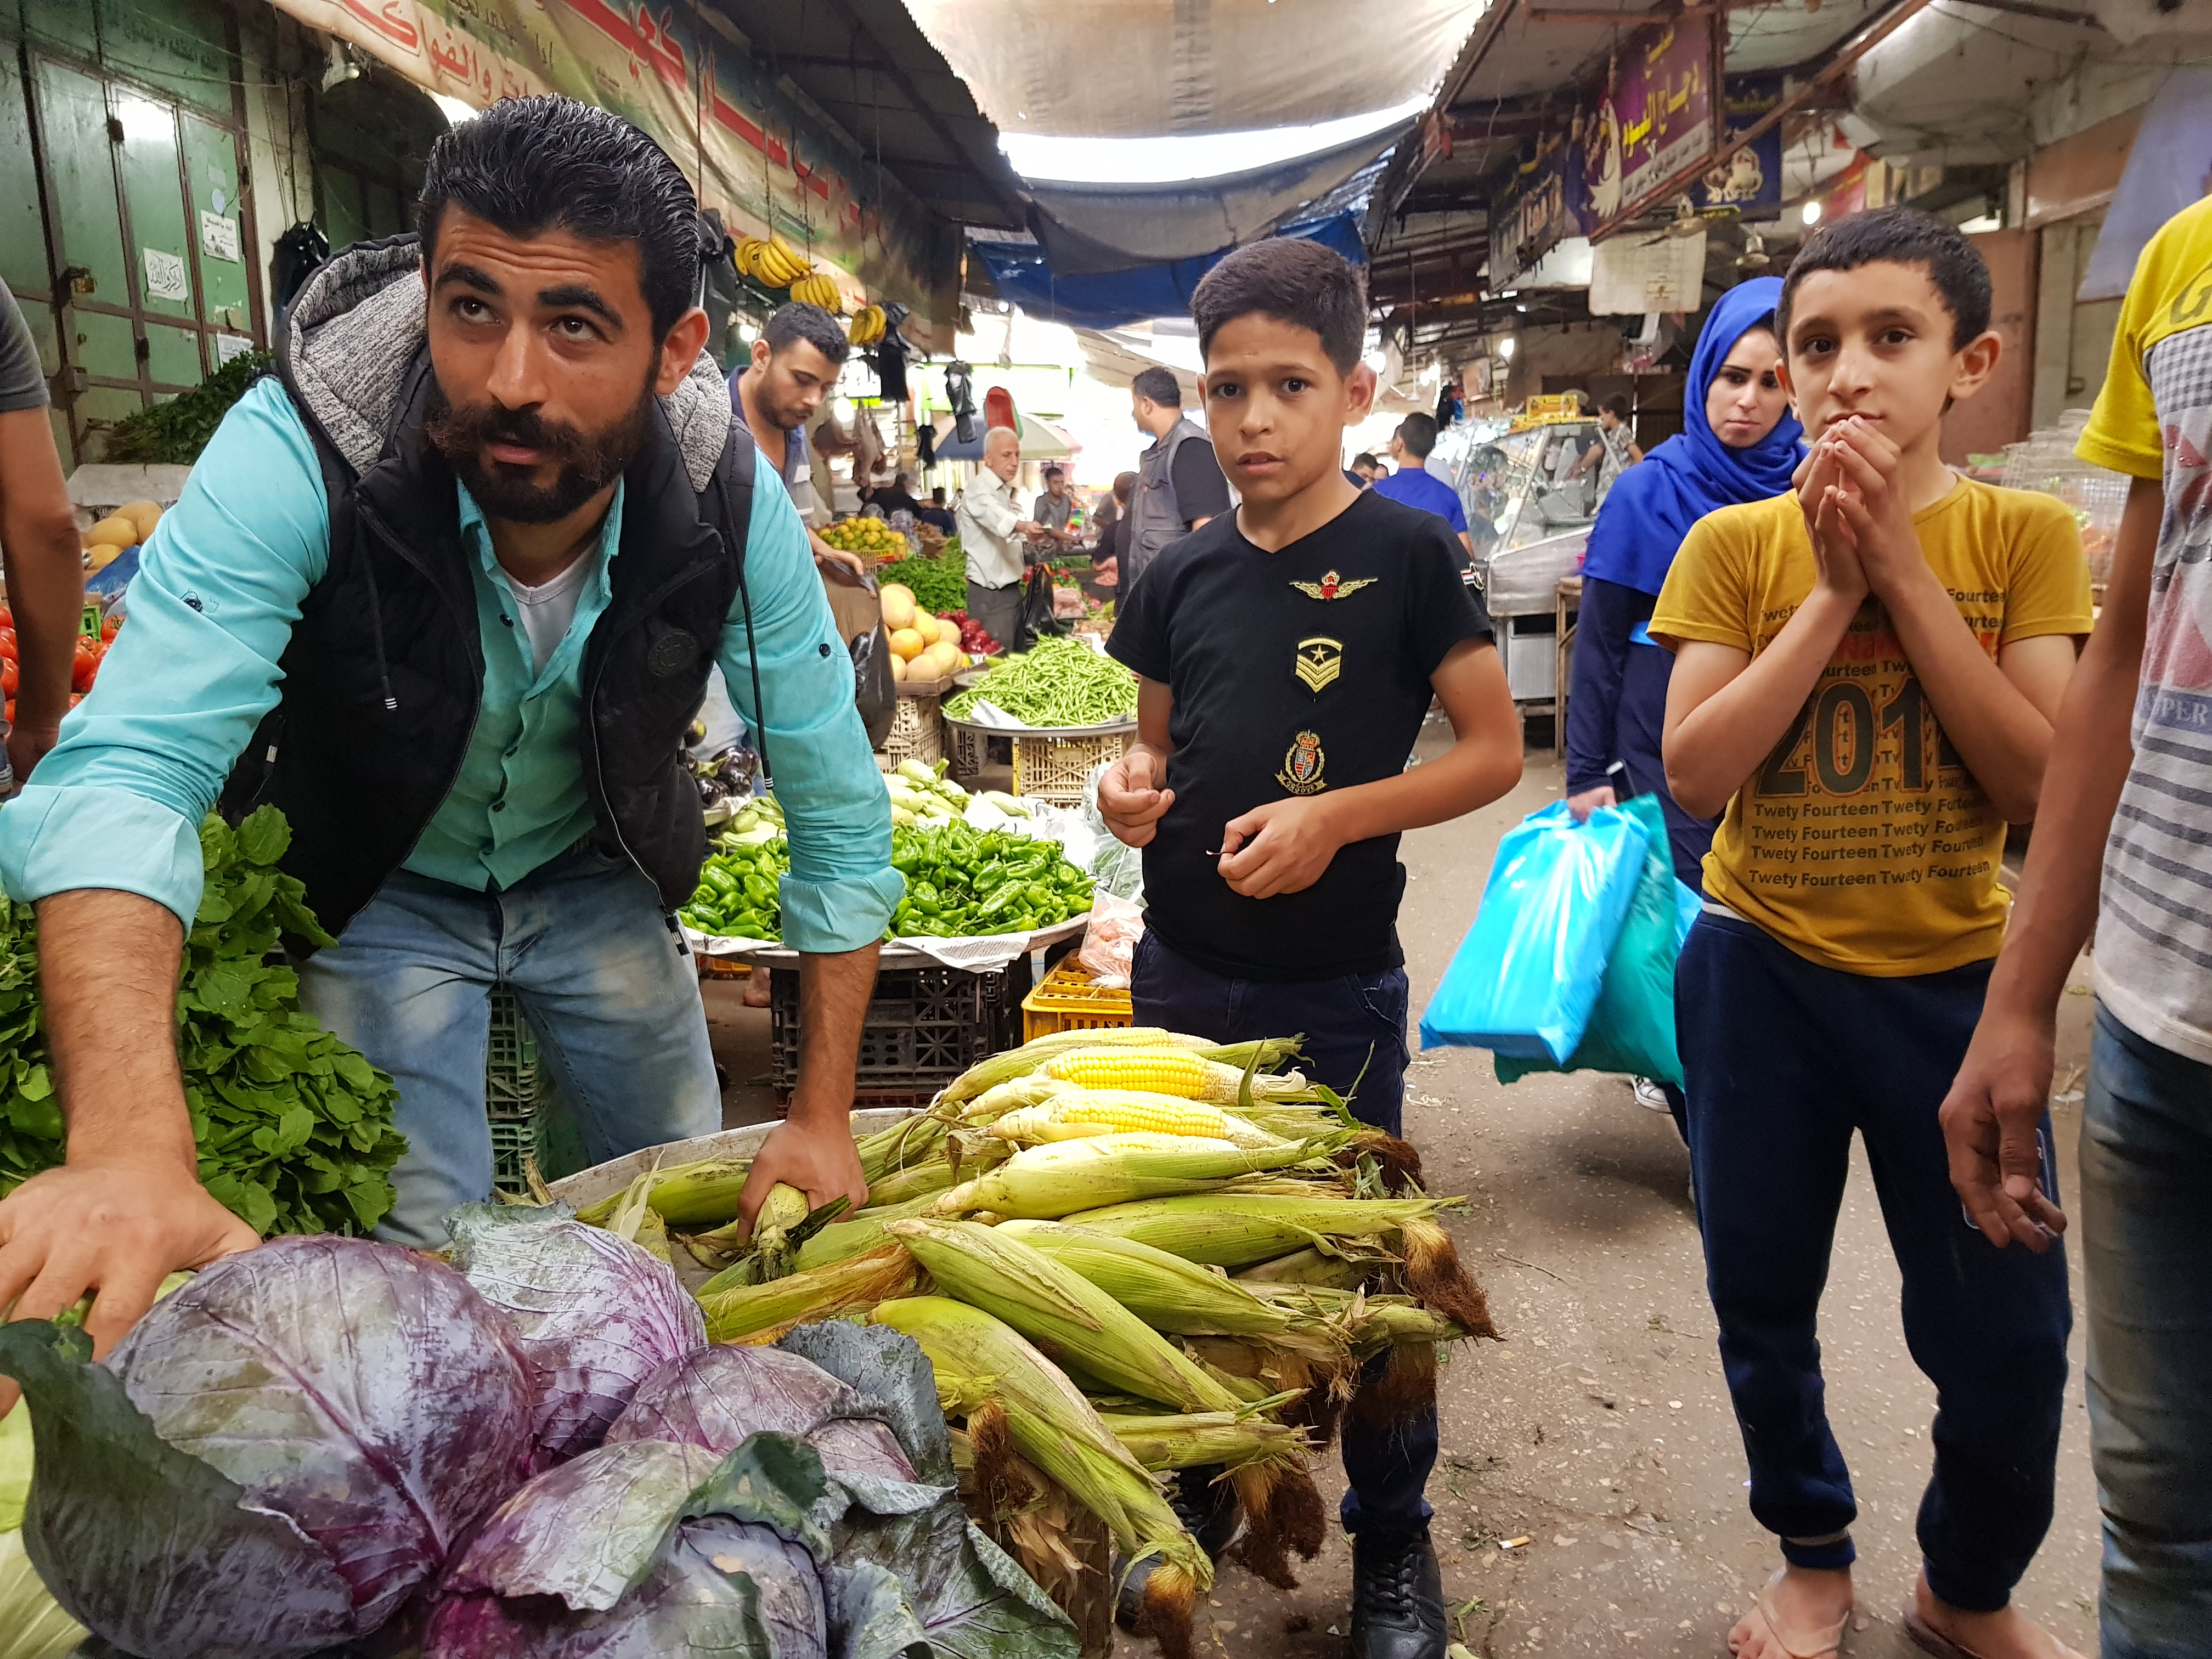 As Ramadan begins, markets are open for the first time this week, but business owners say consumers are poorer than ever and sales are slow in Gaza on May 16, 2018.